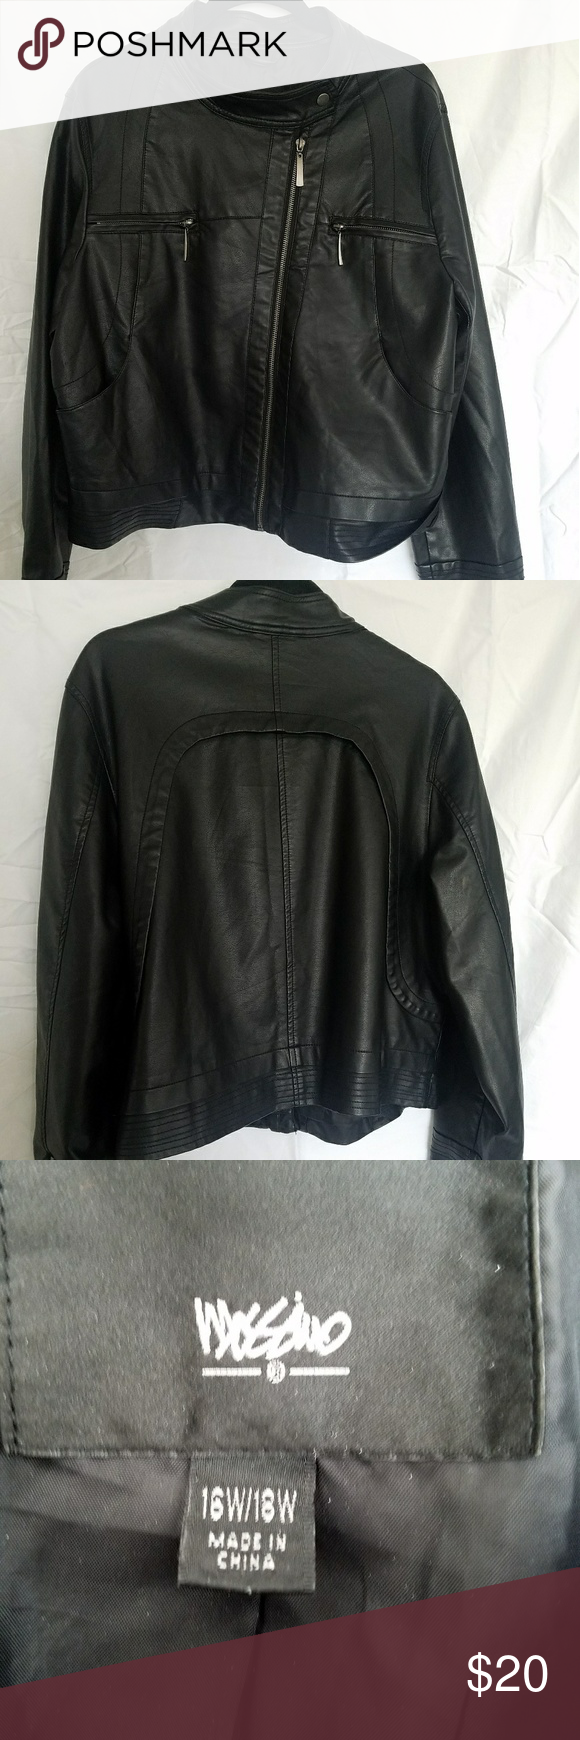 Mossimo Non Leather Jacket Leather Jacket Jackets Leather [ png ]